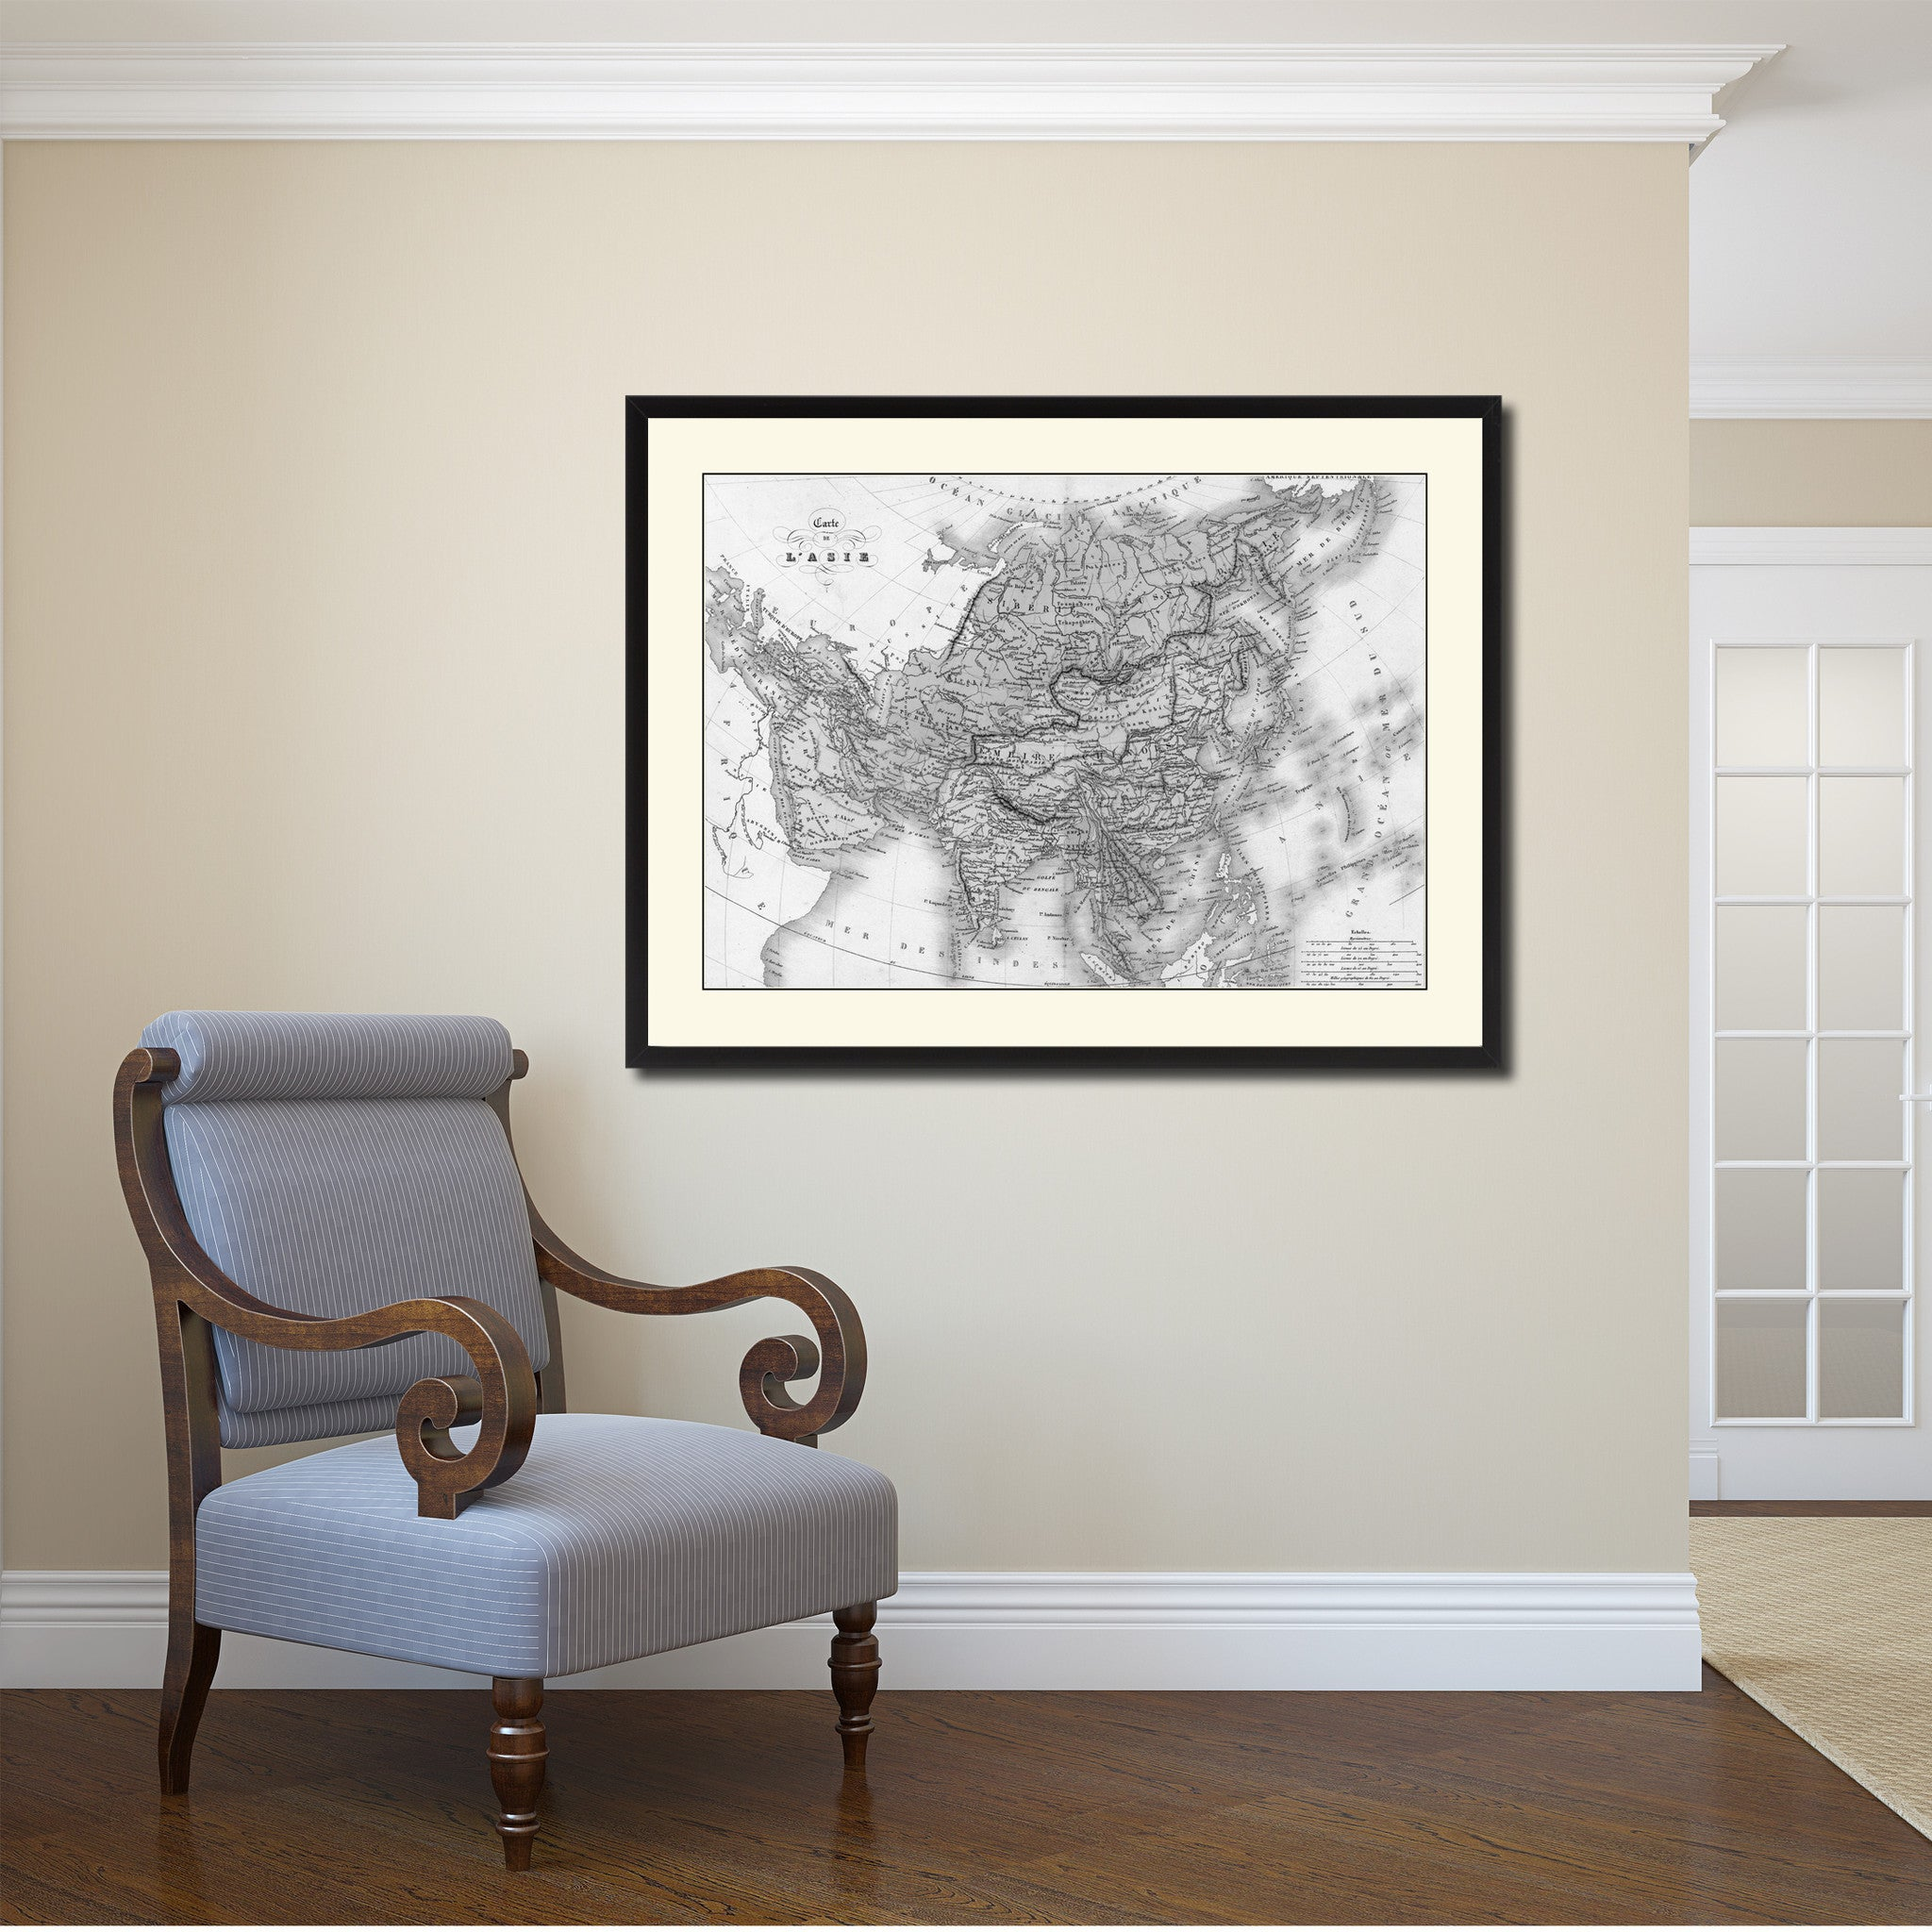 Asia Vintage B W Map Canvas Print Picture Frame Home Decor Wall Art Gift Ideas